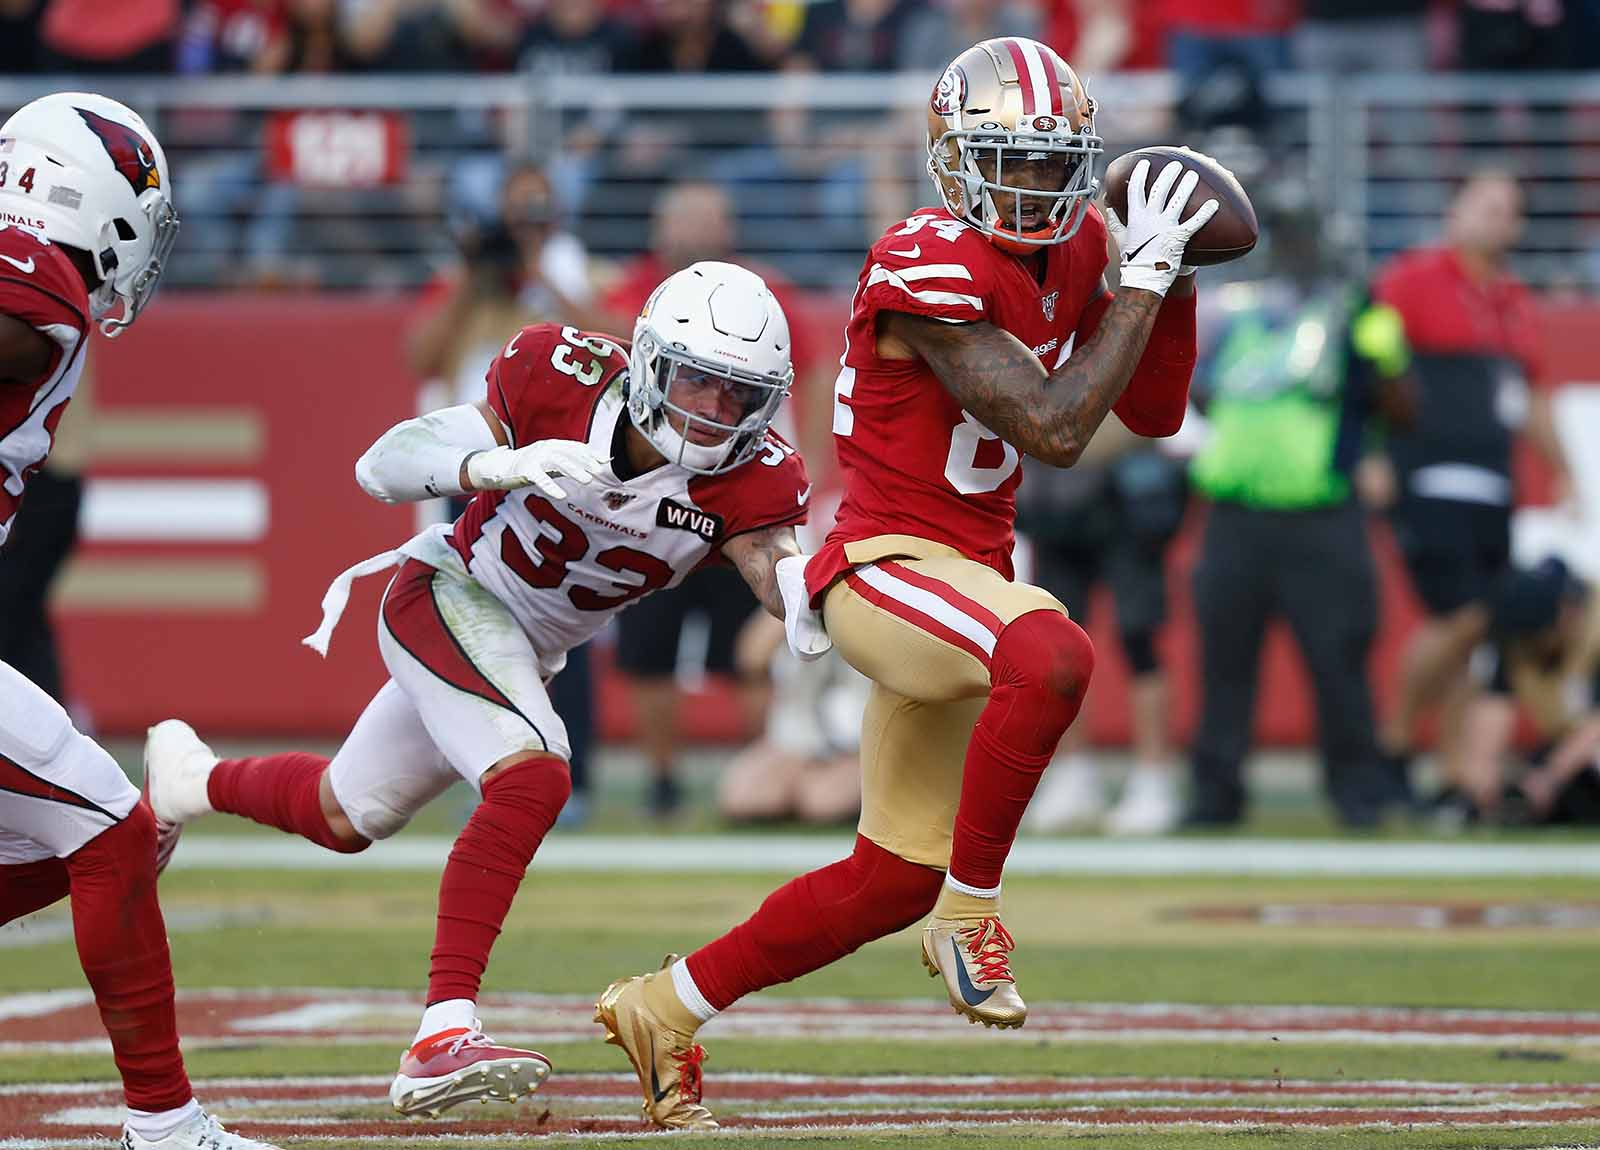 Way to watch 49ers vs Cardinals live stream reddit NFL game today free from anywhere, check the latest nfl score and updates.